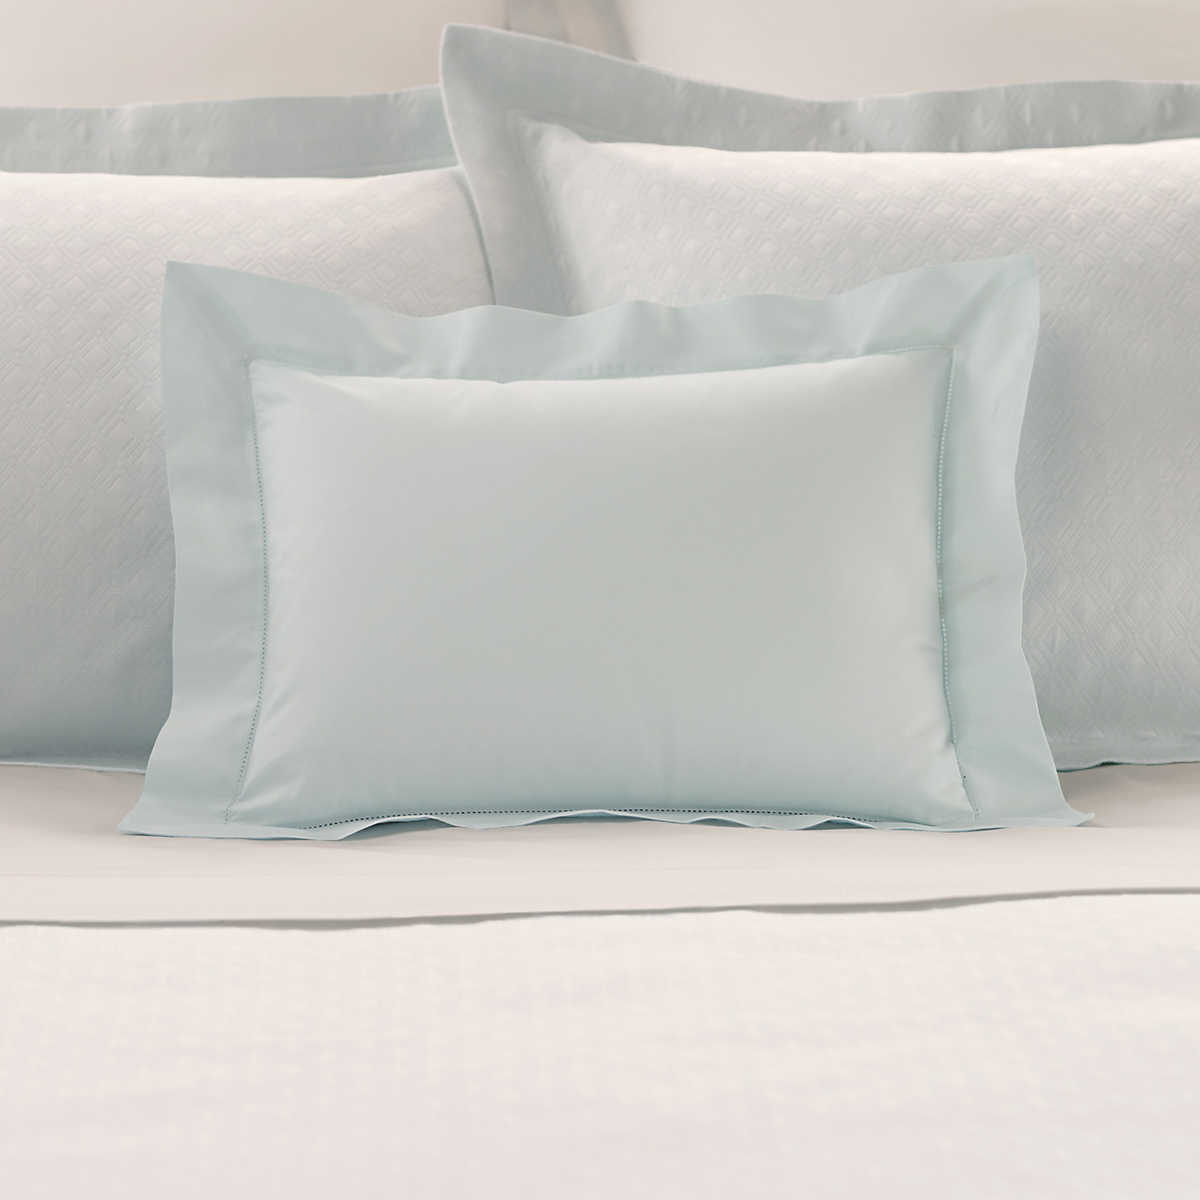 Blue decorative bed pillows - Lia Pearl Blue Decorative Pillow